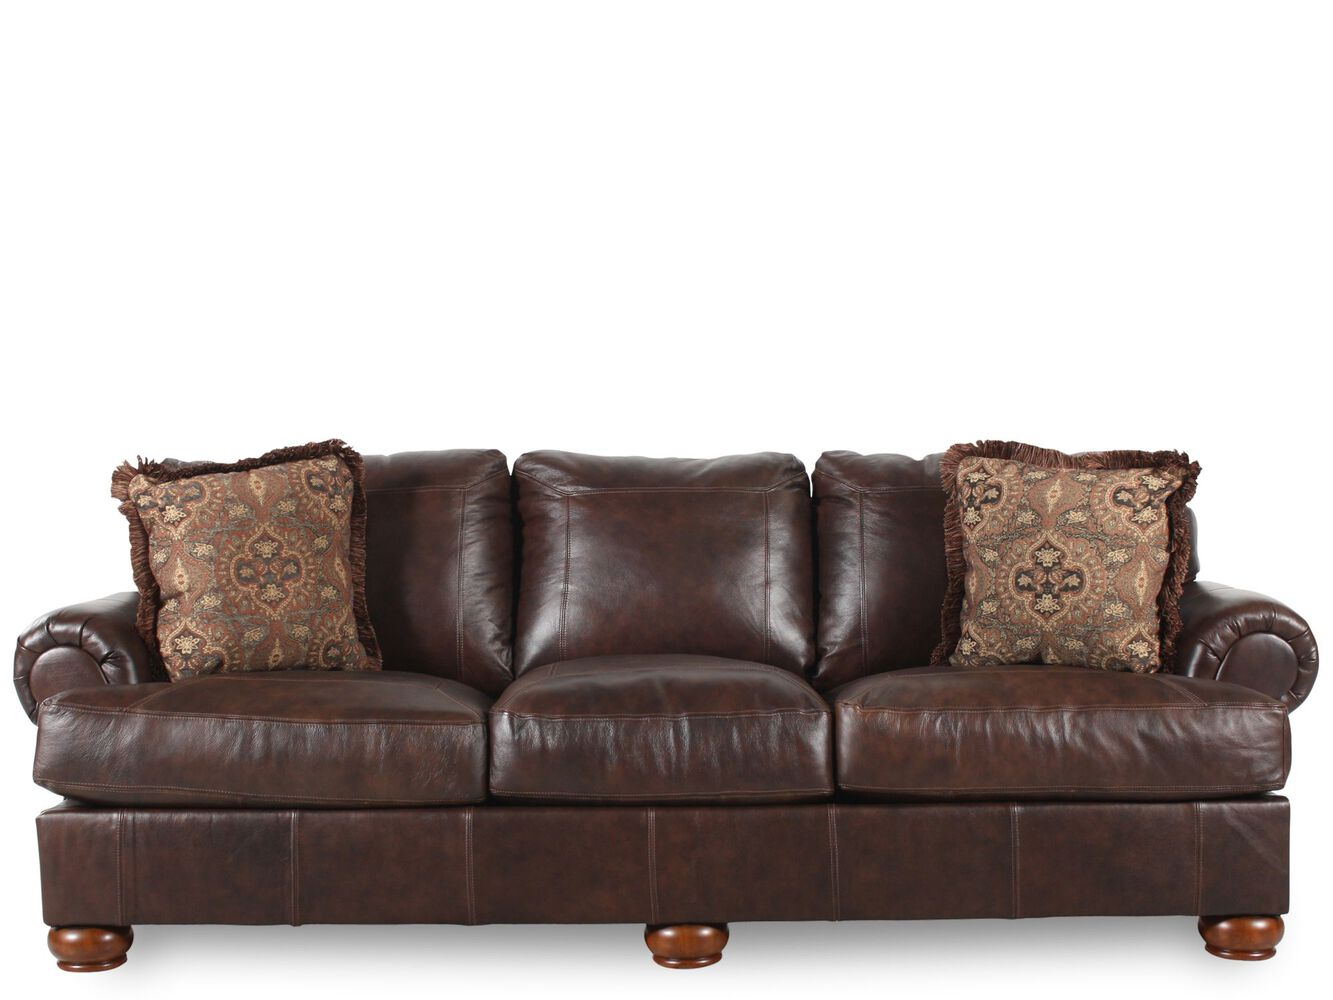 Axiom walnut leather sofa reviews mjob blog for Furniture xchange new jersey